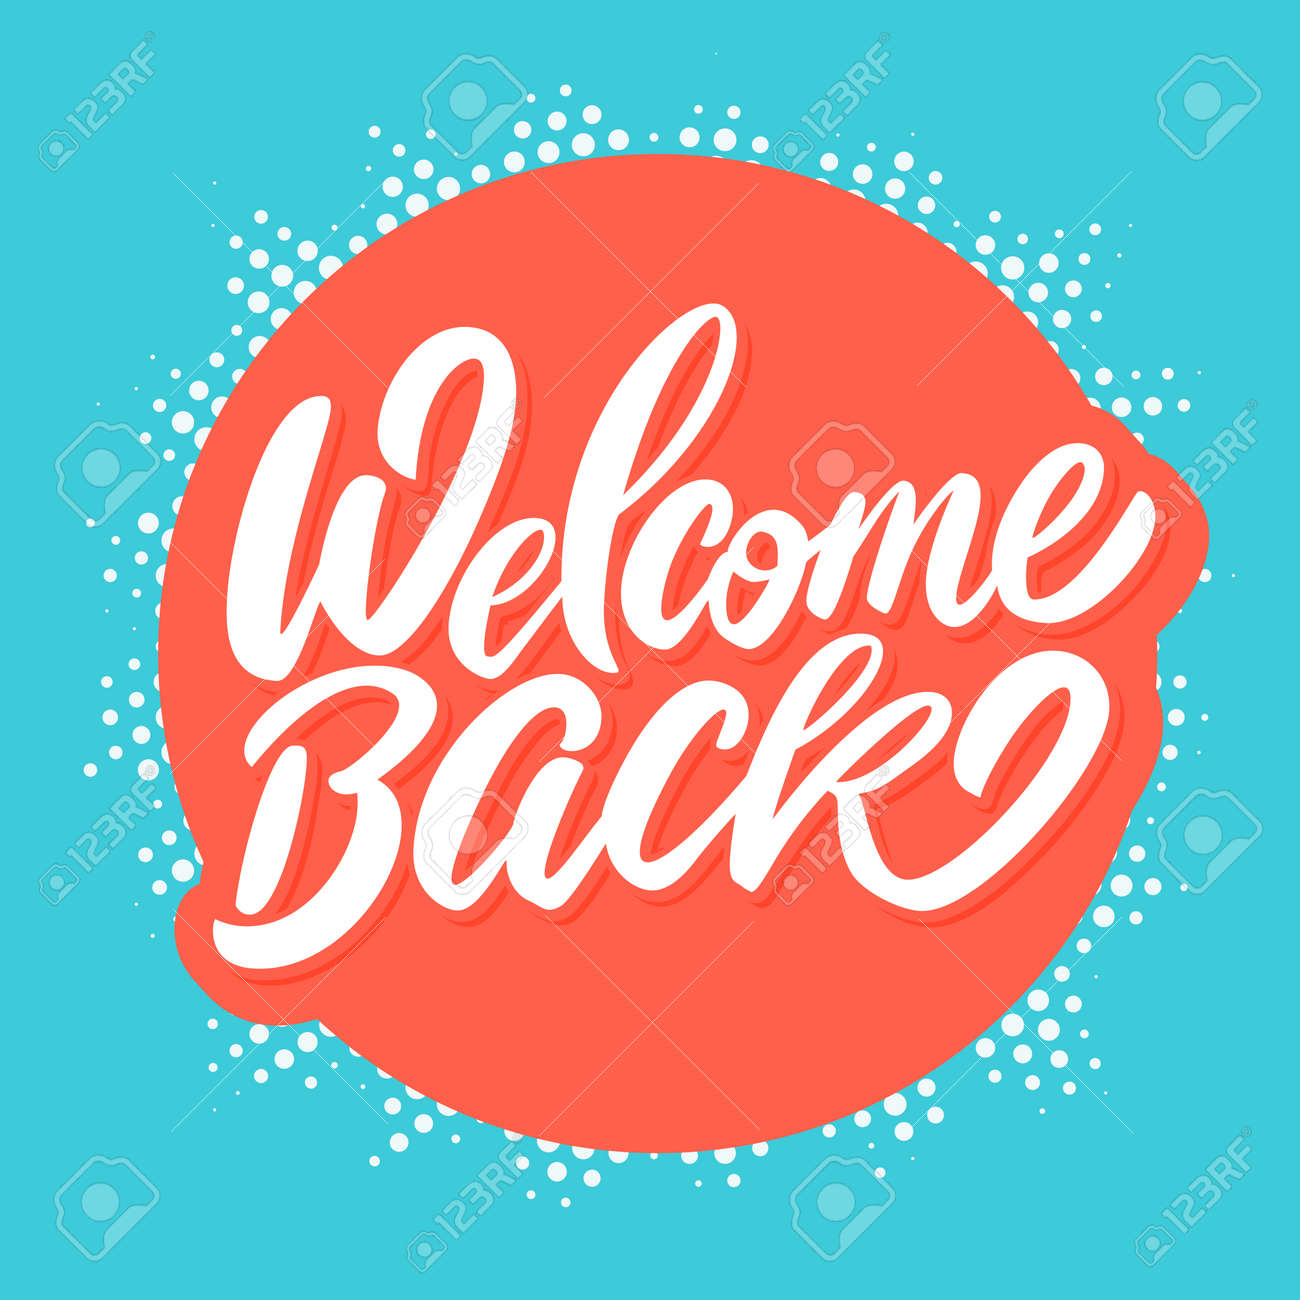 Welcome back banner. - 103778118